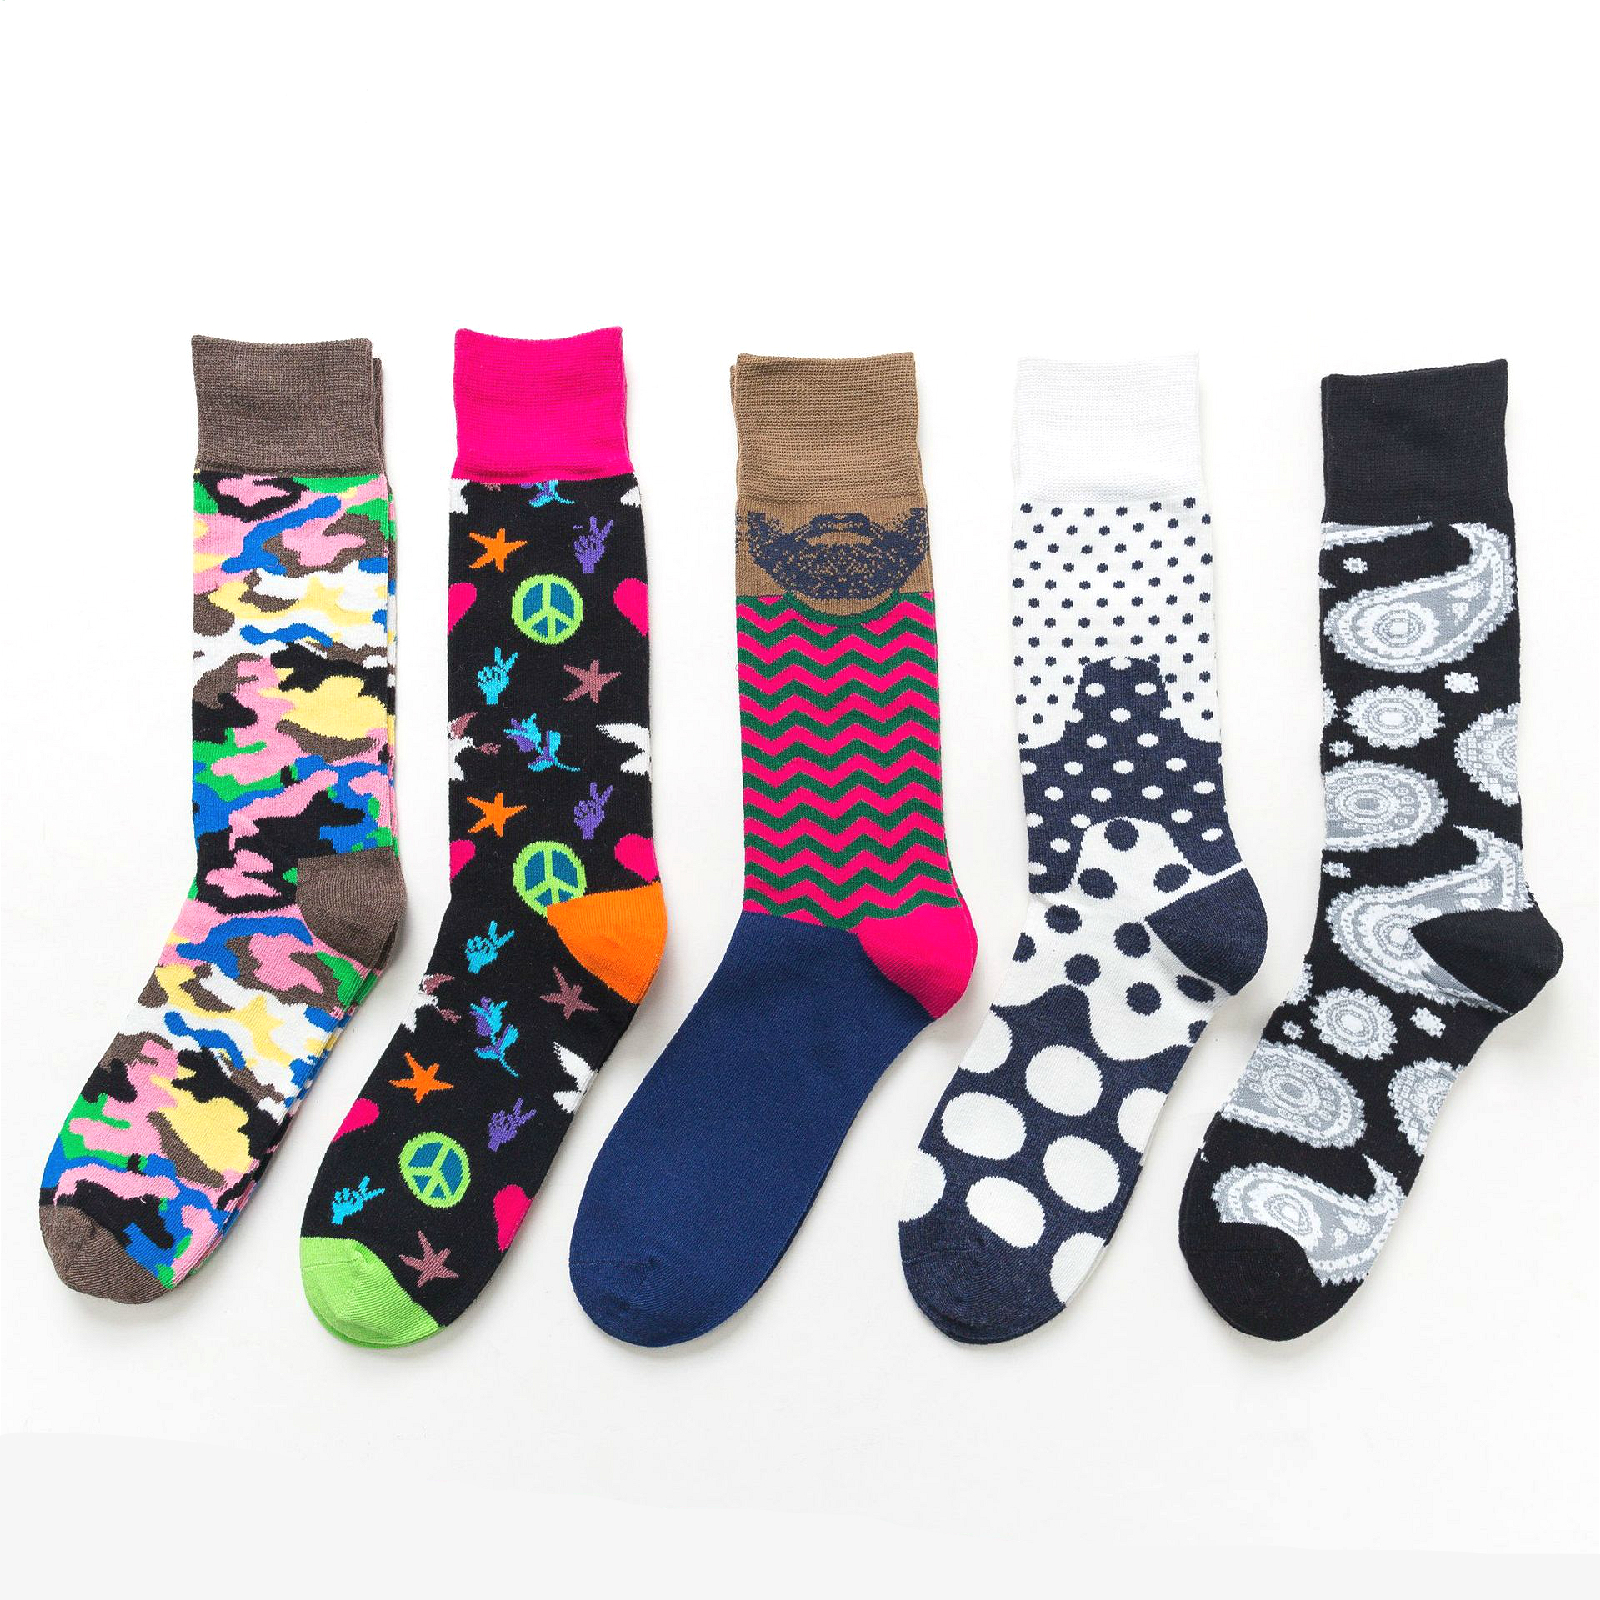 PEONFLY Leopard Print Socks Men Funny Abstract Pattern Colorful Dot Socks Casual Star Harajuku Motion Happy Socks